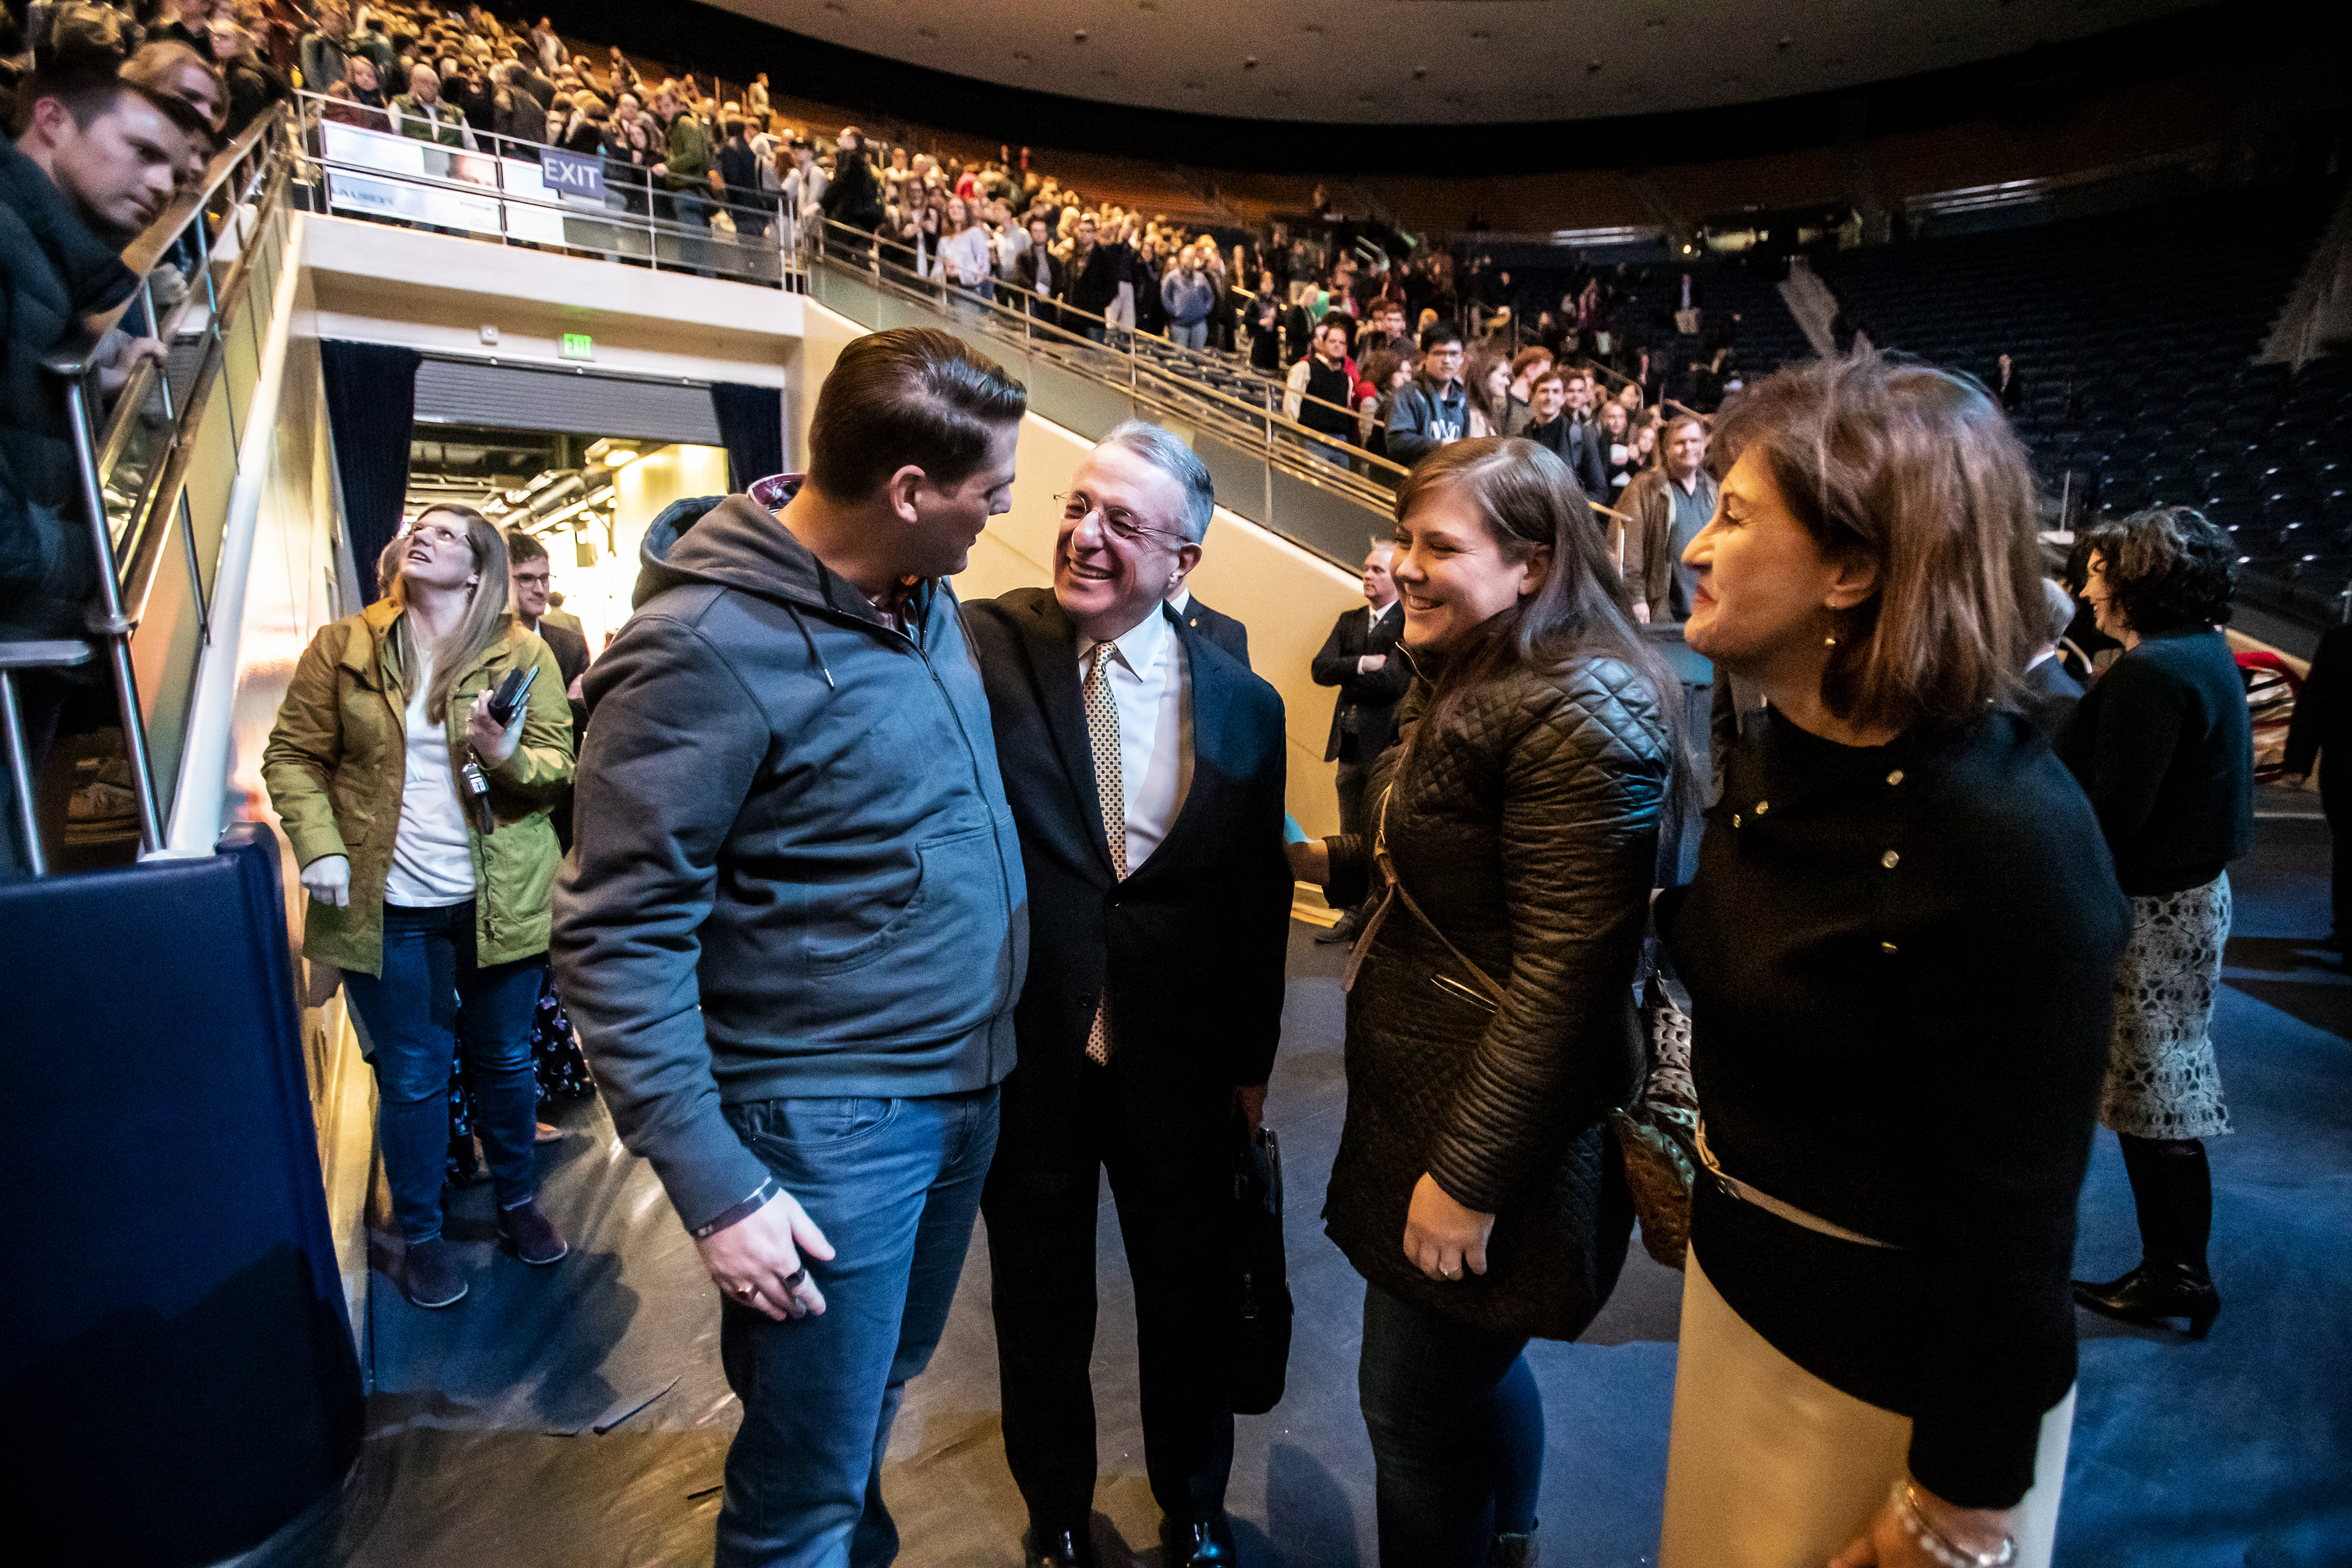 Elder Ulisses Soares of the Quorum of the Twelve Apostles of The Church of Jesus Christ of Latter-day Saints and his wife Sister Rosana Soares greet some of the people attending as they exit after his speaking at a devotional at BYU in Provo on Tuesday, Feb. 5, 2019.